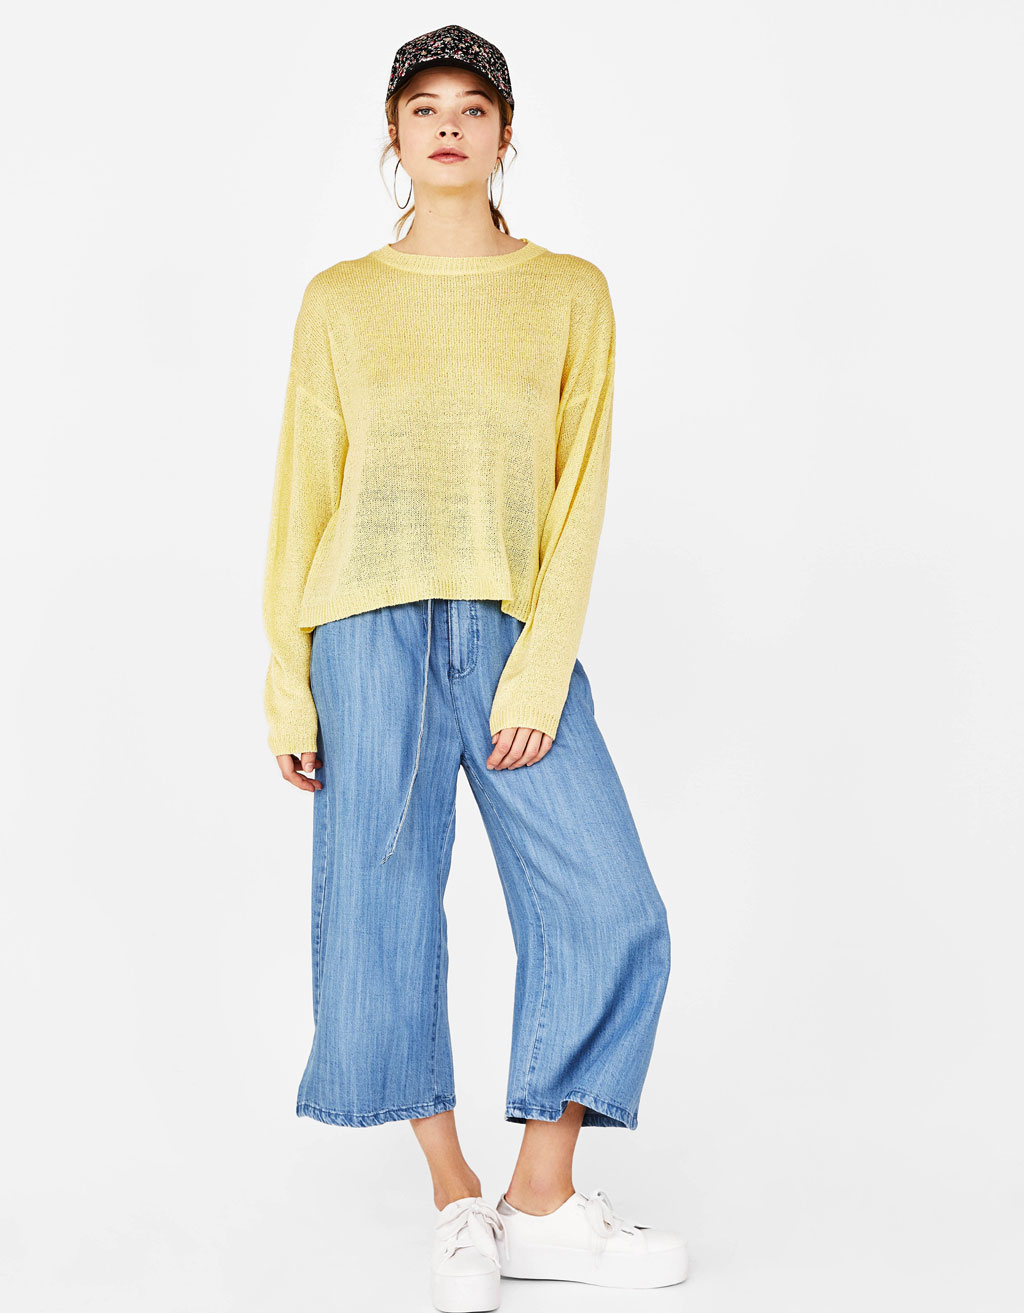 Loose-fitting crew neck sweater